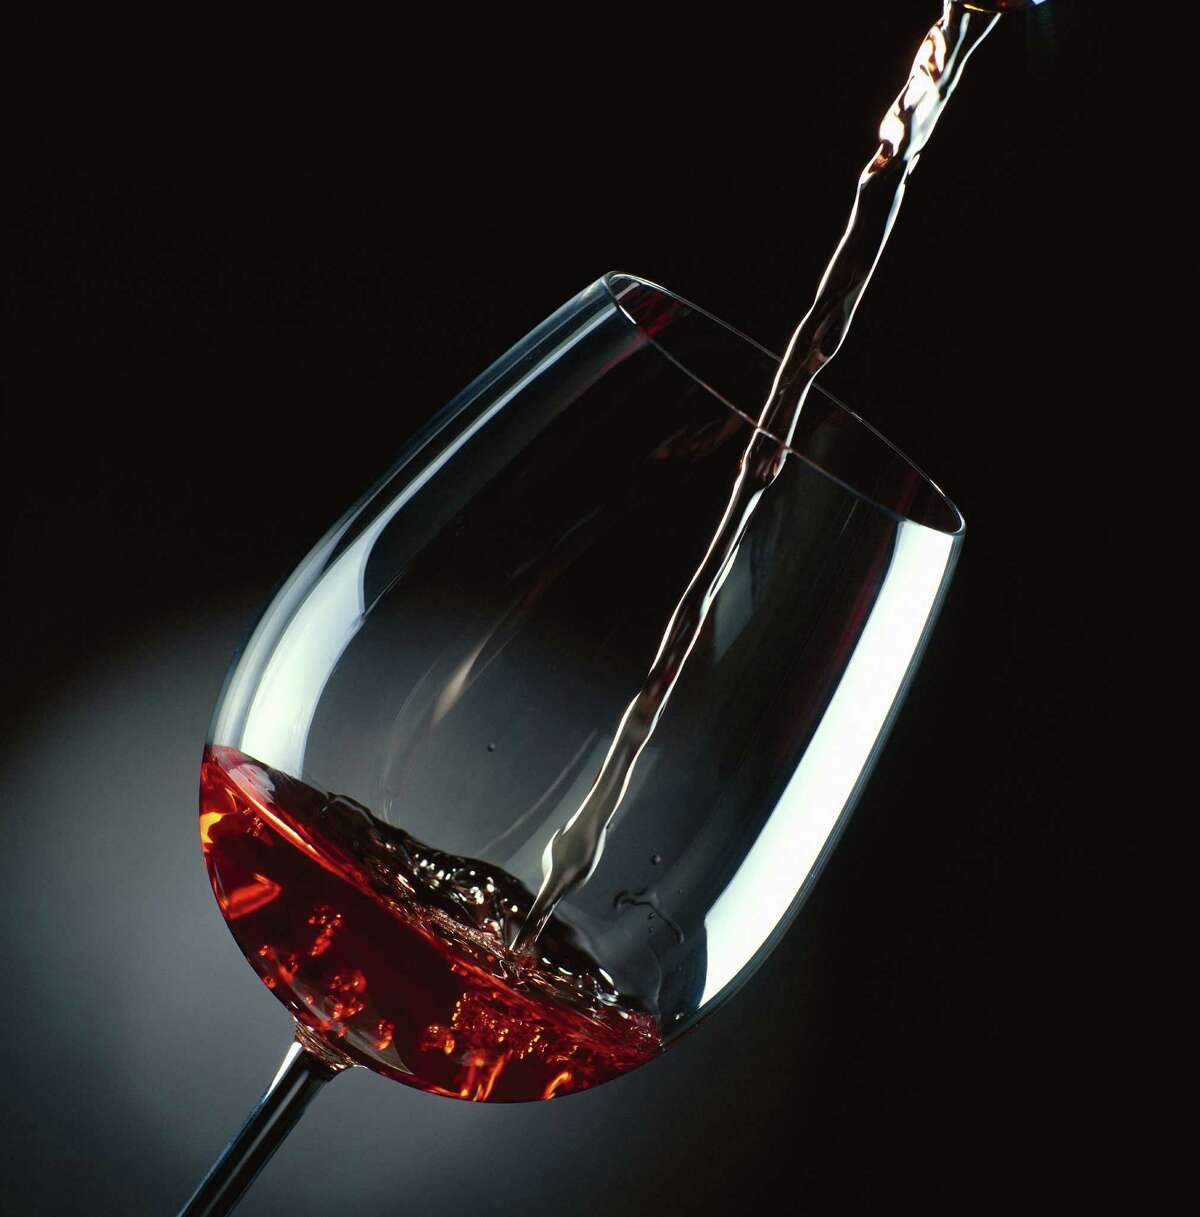 Your average five-ounce glass of red wine is about 125 calories and is just about equal to ...